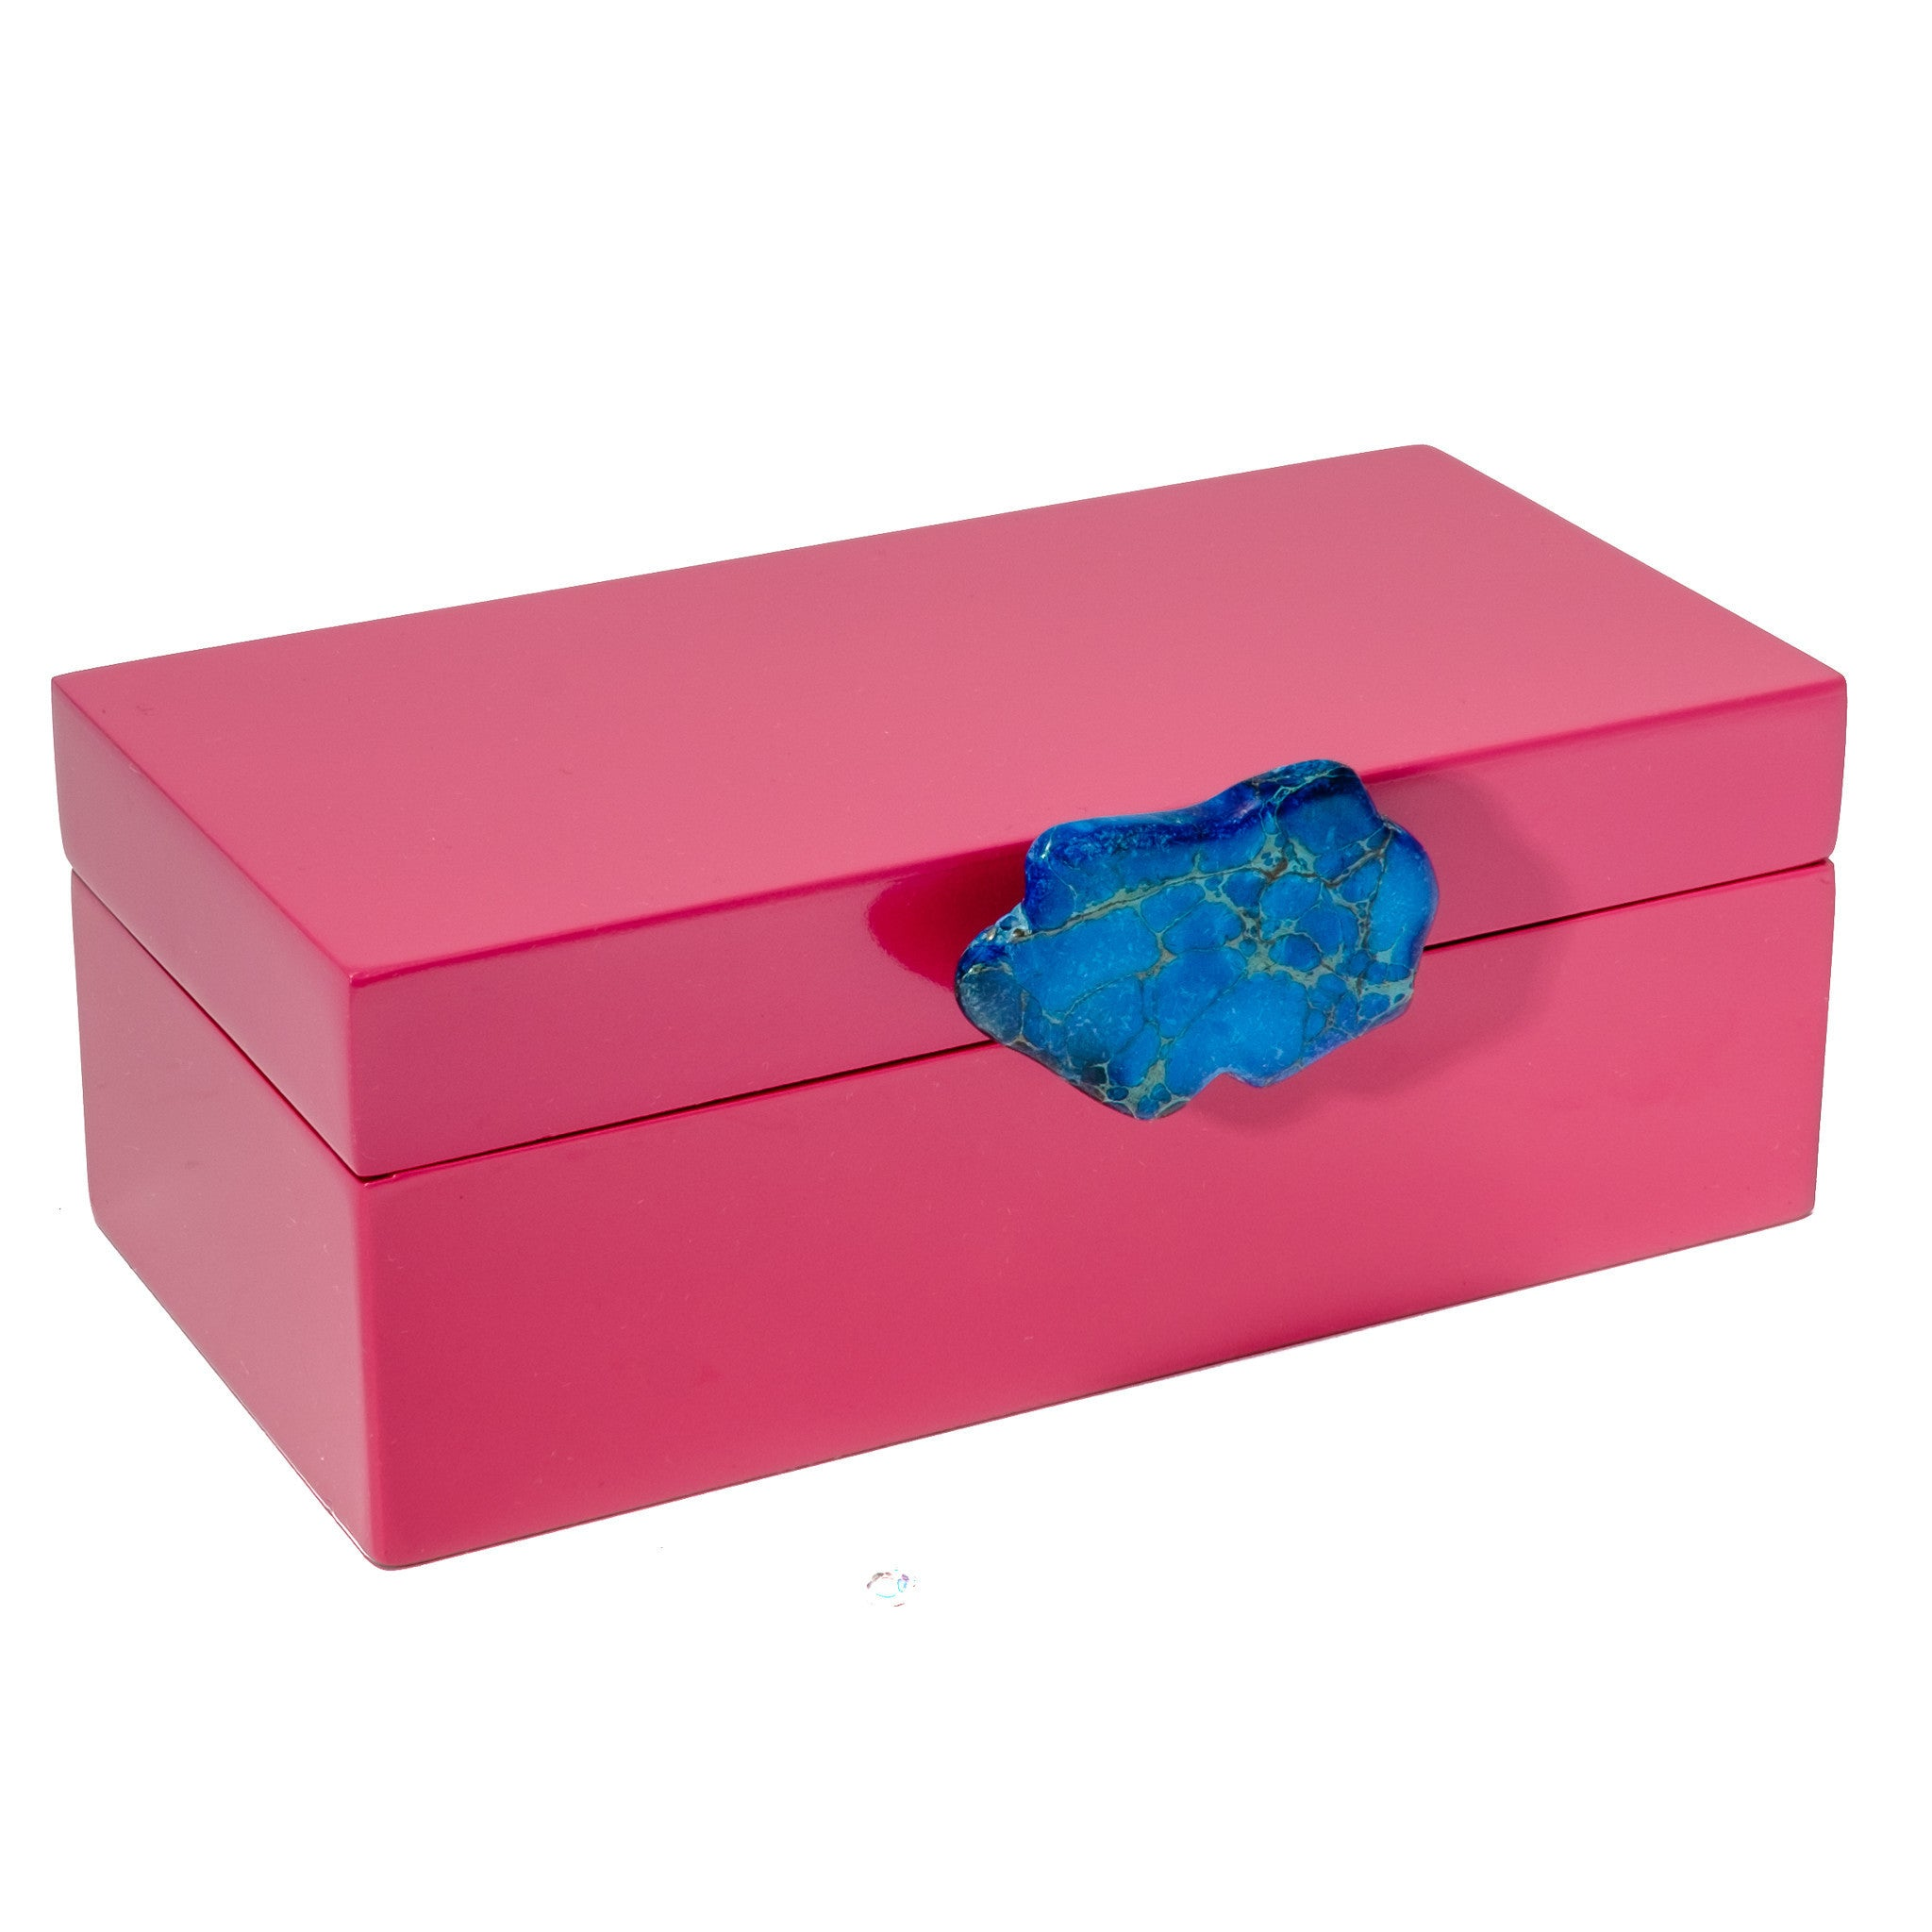 Medium Pink Lacquer Box with Blue Jasper Knob